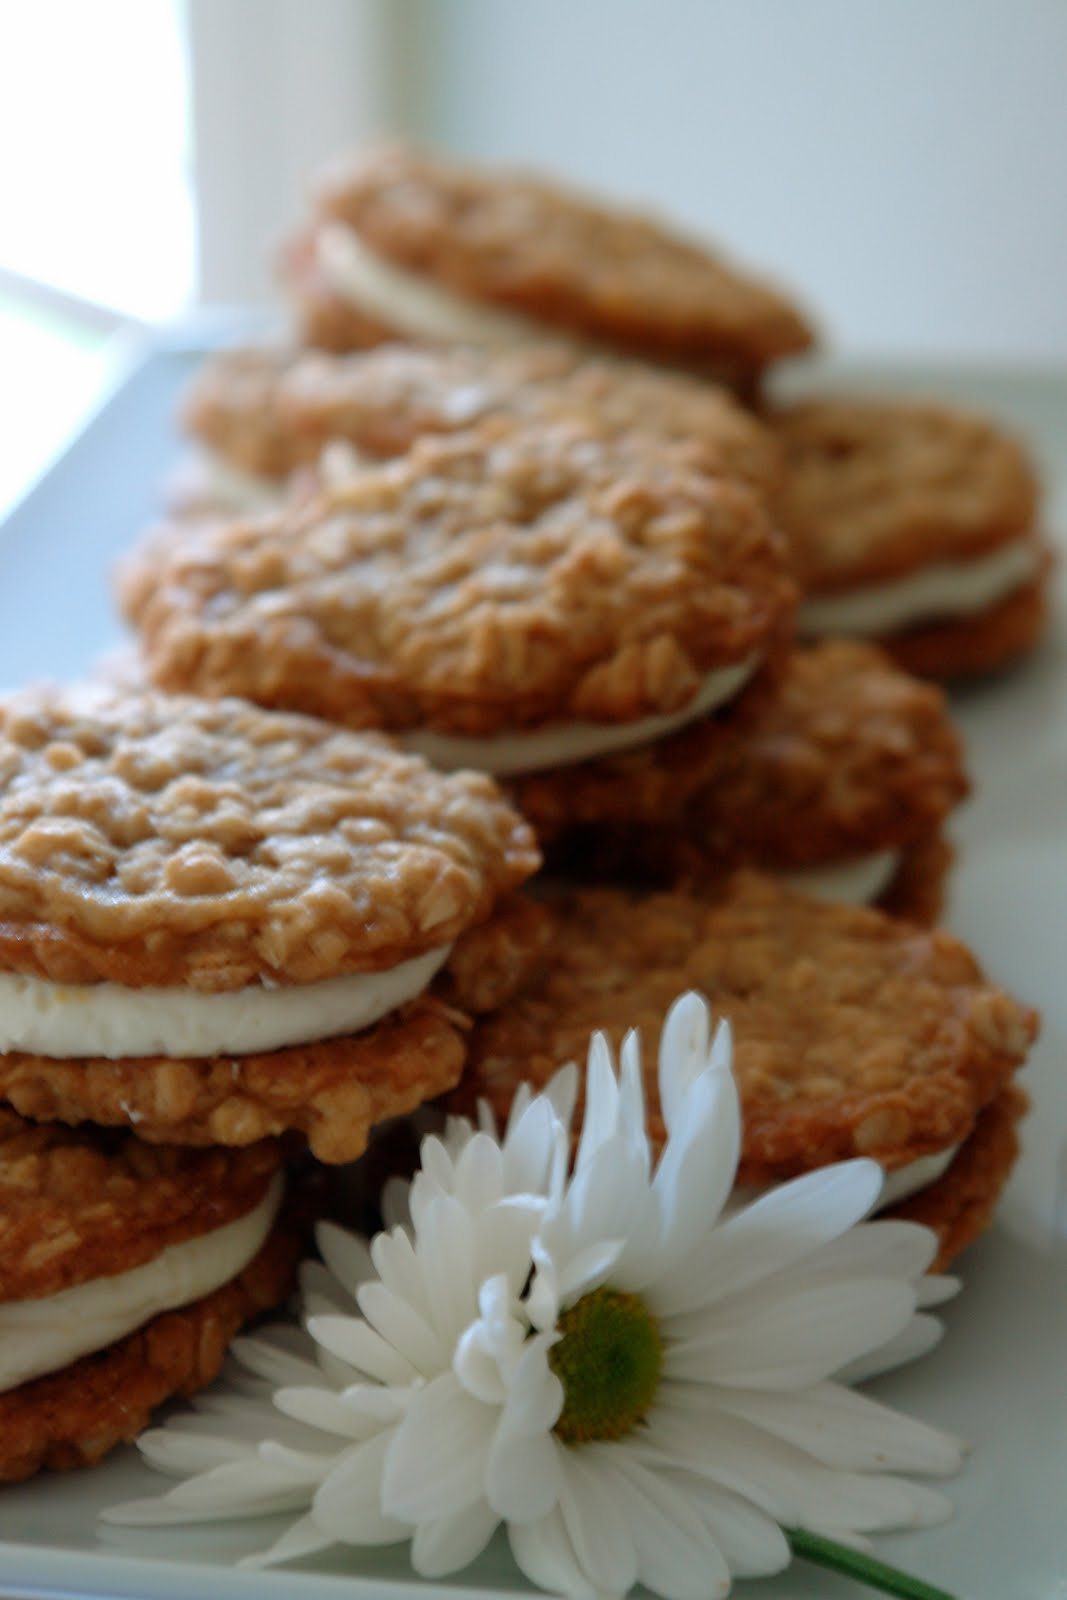 K Bakes: Oatmeal Whoopie Pie with a twist of lemon please?